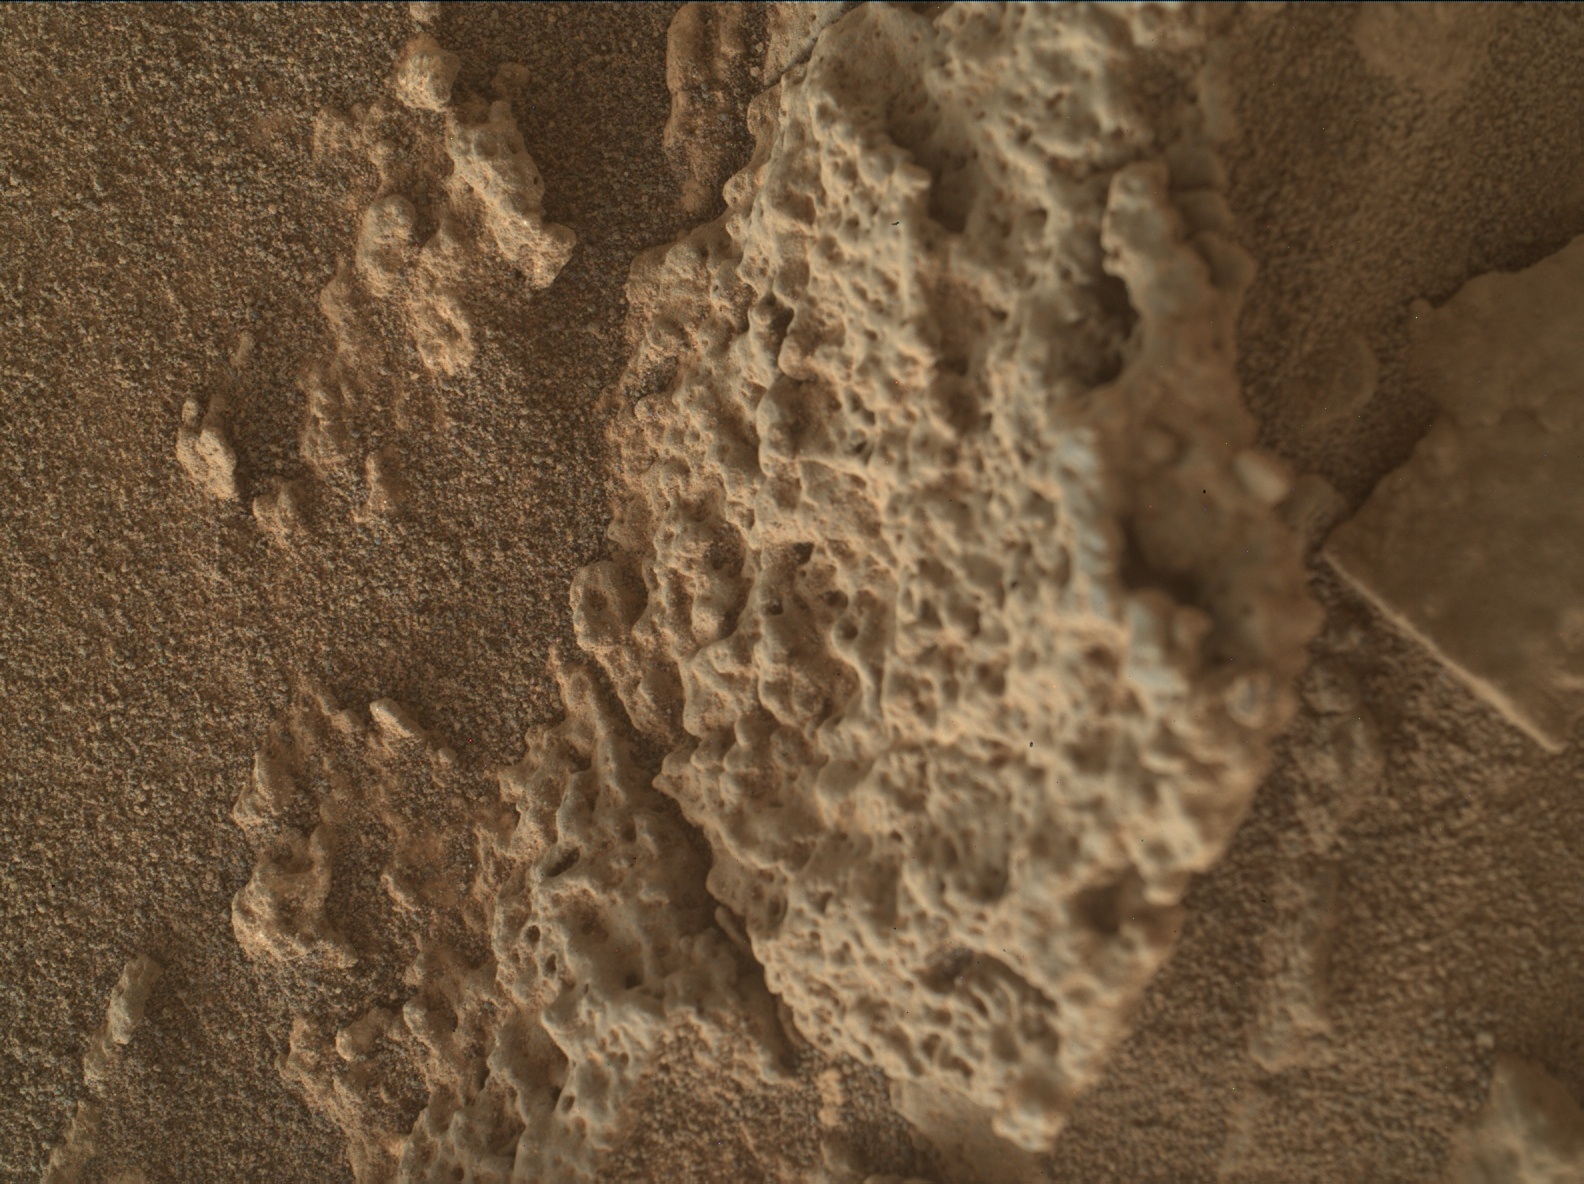 Nasa's Mars rover Curiosity acquired this image using its Mars Hand Lens Imager (MAHLI) on Sol 2642